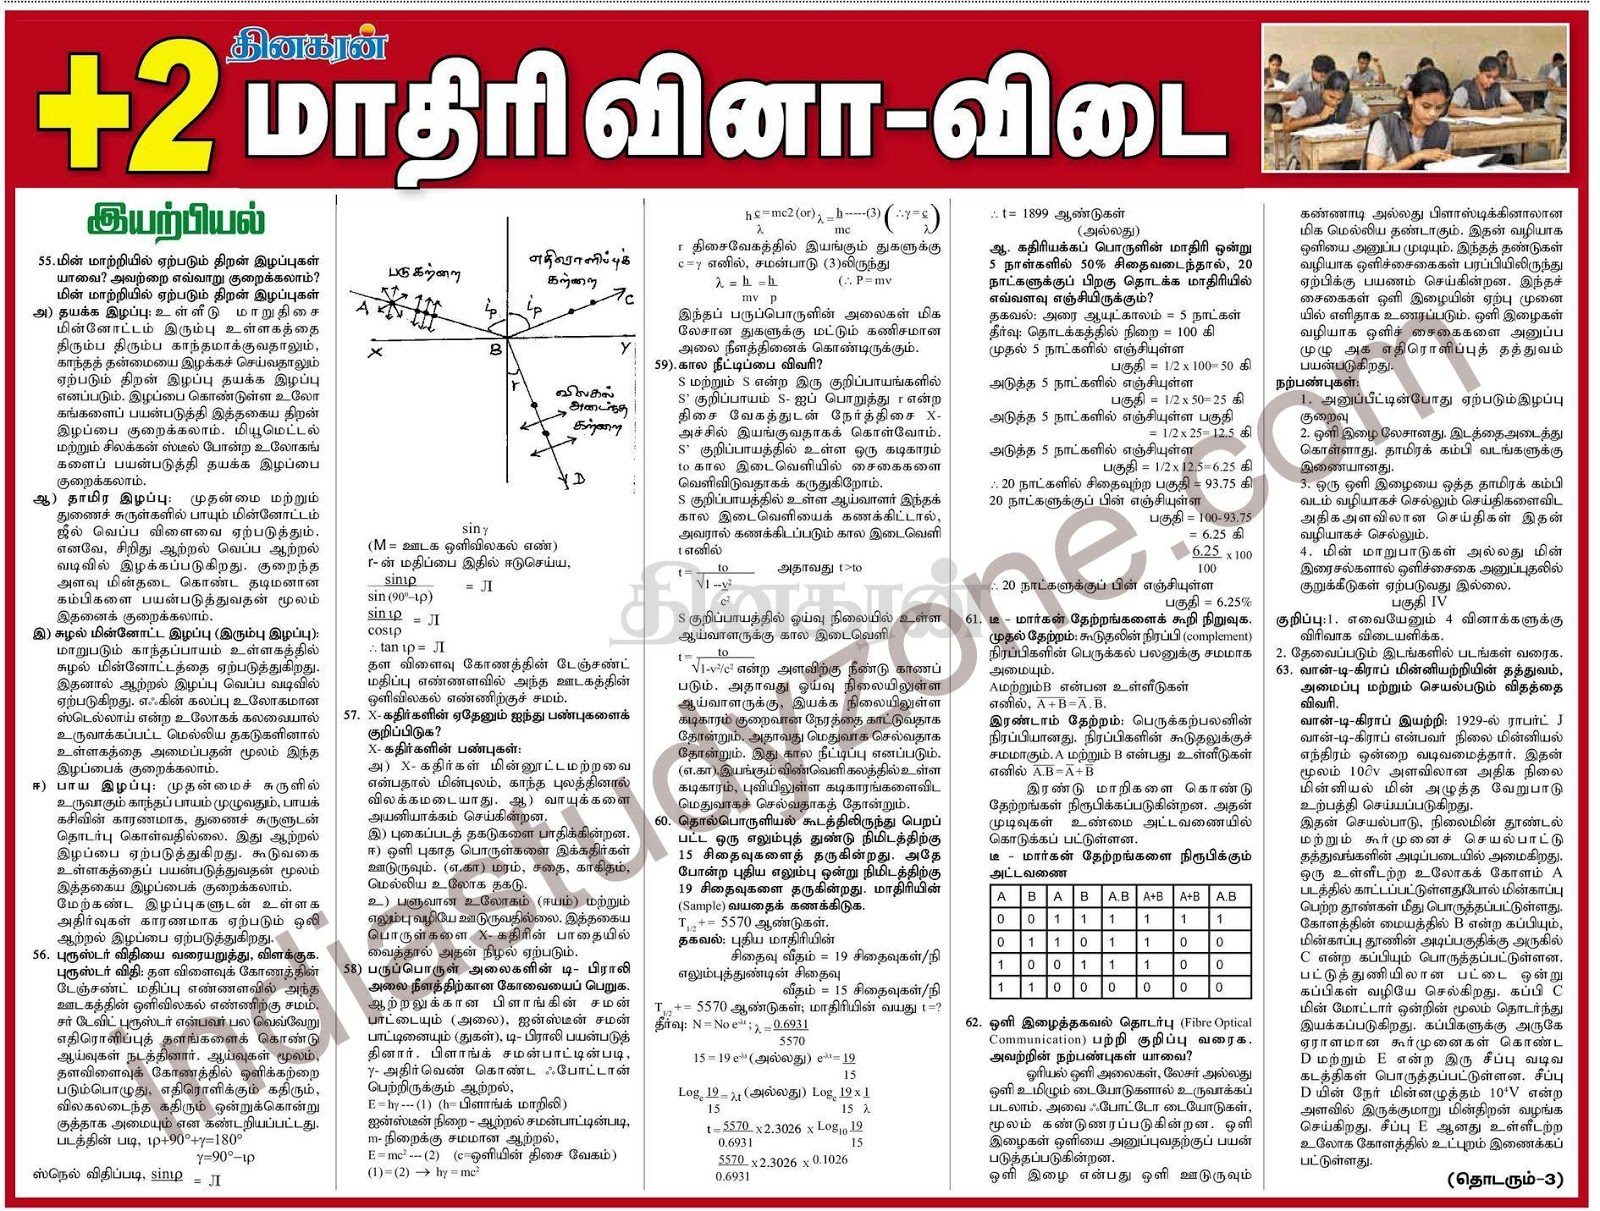 tamil essay related newspaper Get daily world news, expert opinion and research from sources around the world read essays on us foreign policy from world affairs journal and blogs by widely acclaimed commentators.